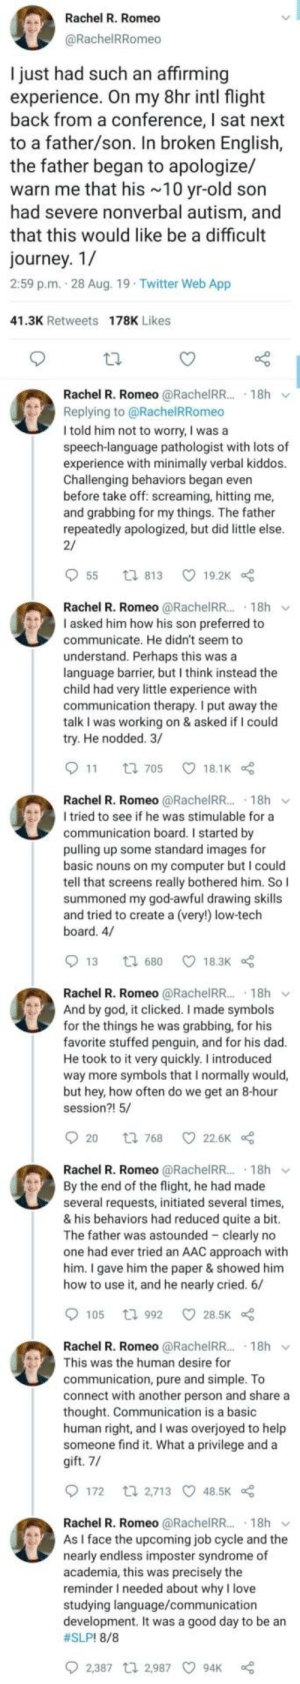 Not sure if it was posted here but definitely should be: Rachel R. Romeo  @RachelRRomeo  I just had such an affirming  experience. On my 8hr intl flight  back from a conference, I sat next  to a father/son. In broken English,  the father began to apologize/  warn me that his 10 yr-old son  had severe nonverbal autism, and  that this would like be a difficult  journey. 1/  2:59 p.m. 28 Aug. 19 Twitter Web App  41.3K Retweets 178K Likes  Rachel R. Romeo @RachelRR.. 18h  Replying to@RachelRRomeo  I told him not to worry, I was a  speech-language pathologist with lots of  experience with minimally verbal kiddos.  Challenging behaviors began even  before take off: screaming, hitting me,  and grabbing for my things. The father  repeatedly apologized, but did little else.  2/  55  19.2K  ti 813  Rachel R. Romeo @RachelR.. 18h  I asked him how his son preferred to  communicate. He didn't seem to  understand. Perhaps this was a  language barrier, but I think instead the  child had very little experience with  communication therapy. I put away the  talk I was working on & asked if I could  try. He nodded. 3/  11  18.1K  t 705  Rachel R. Romeo @RachelR... 18h  I tried to see if he was stimulable for a  communication board. I started by  pulling up some standard images for  basic nouns on my computer but I could  tell that screens really bothered him. So I  summoned my god-awful drawing skills  and tried to create a (very!) low-tech  board. 4/  13  18.3K  t 680  Rachel R. Romeo @RachelRR.. 18h  And by god, it clicked. I made symbols  for the things he was grabbing, for his  favorite stuffed penguin, and for his dad.  He took to it very quickly. I introduced  way more symbols that I normally would,  but hey, how often do we get an 8-hour  session?! 5/  20  22.6K  t 768  Rachel R. Romeo @RachelRR.. 18h  By the end of the flight, he had made  several requests, initiated several times,  & his behaviors had reduced quite a bit.  The father was astounded clearly no  one had ever tried an AAC approach with  him. I gave him the paper & showed him  how to use it, and he nearly cried. 6/  105  28.5K  t 992  Rachel R. Romeo @RachelRR.. 18h  This was the human desire for  communication, pure and simple. To  connect with another person and share a  thought. Communication is a basic  human right, and I was overjoyed to help  someone find it. What a privilege and a  gift. 7/  172  t 2,713 48.5K  Rachel R. Romeo @RachelRR..  As I face the upcoming job cycle and the  nearly endless imposter syndrome of  academia, this was precisely the  reminder I needed about why I love  studying language/communication  development. It was a good day to be an  #SLP! 8/8  18h  2,387 t 2,987  94K Not sure if it was posted here but definitely should be